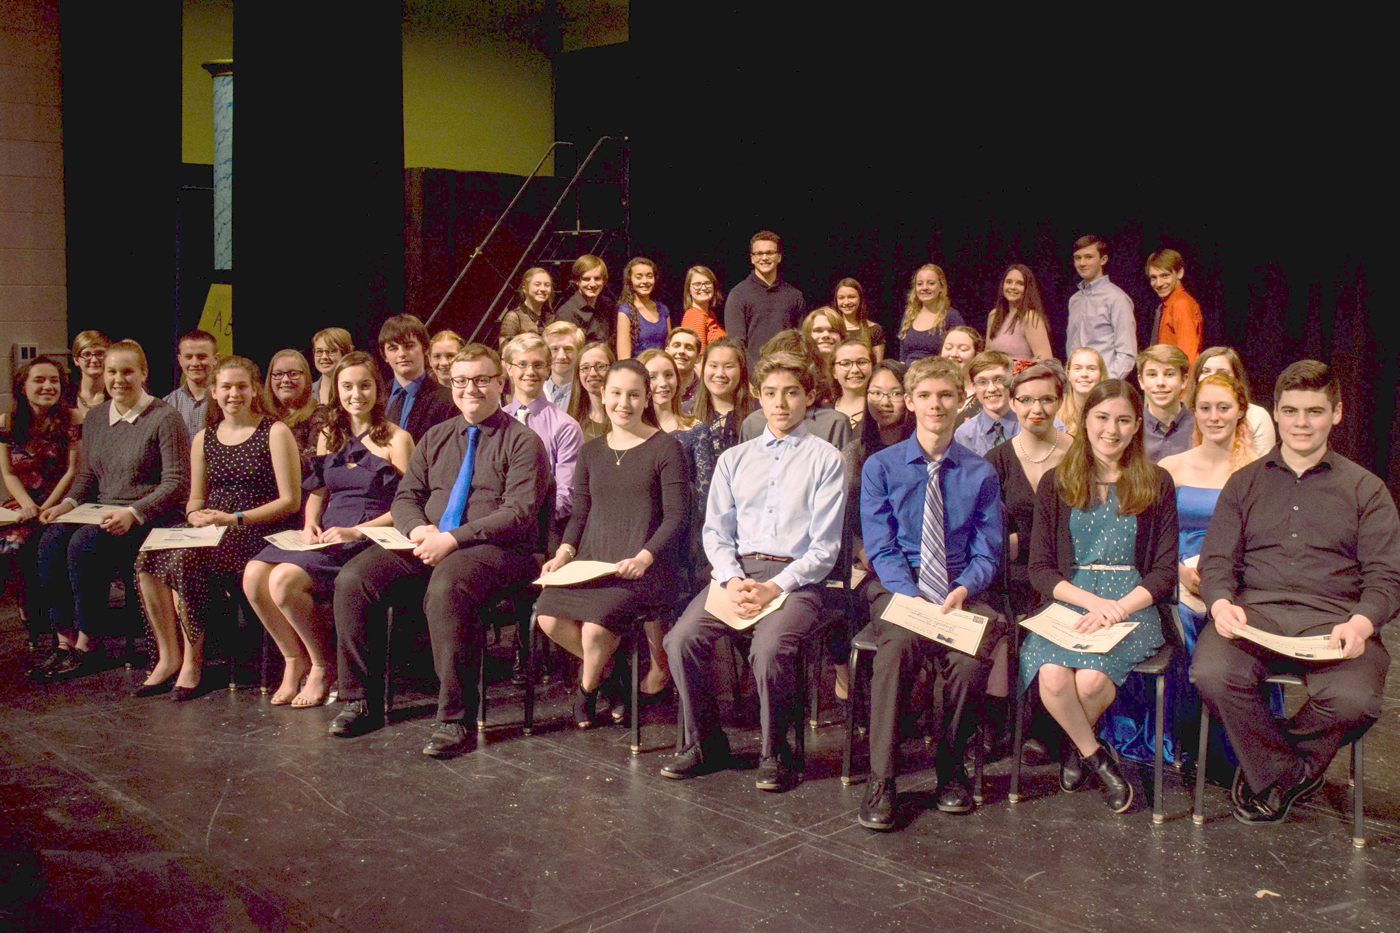 Brockport's Tri-M Music Honor Society inducted new members on March 21. Provided photo